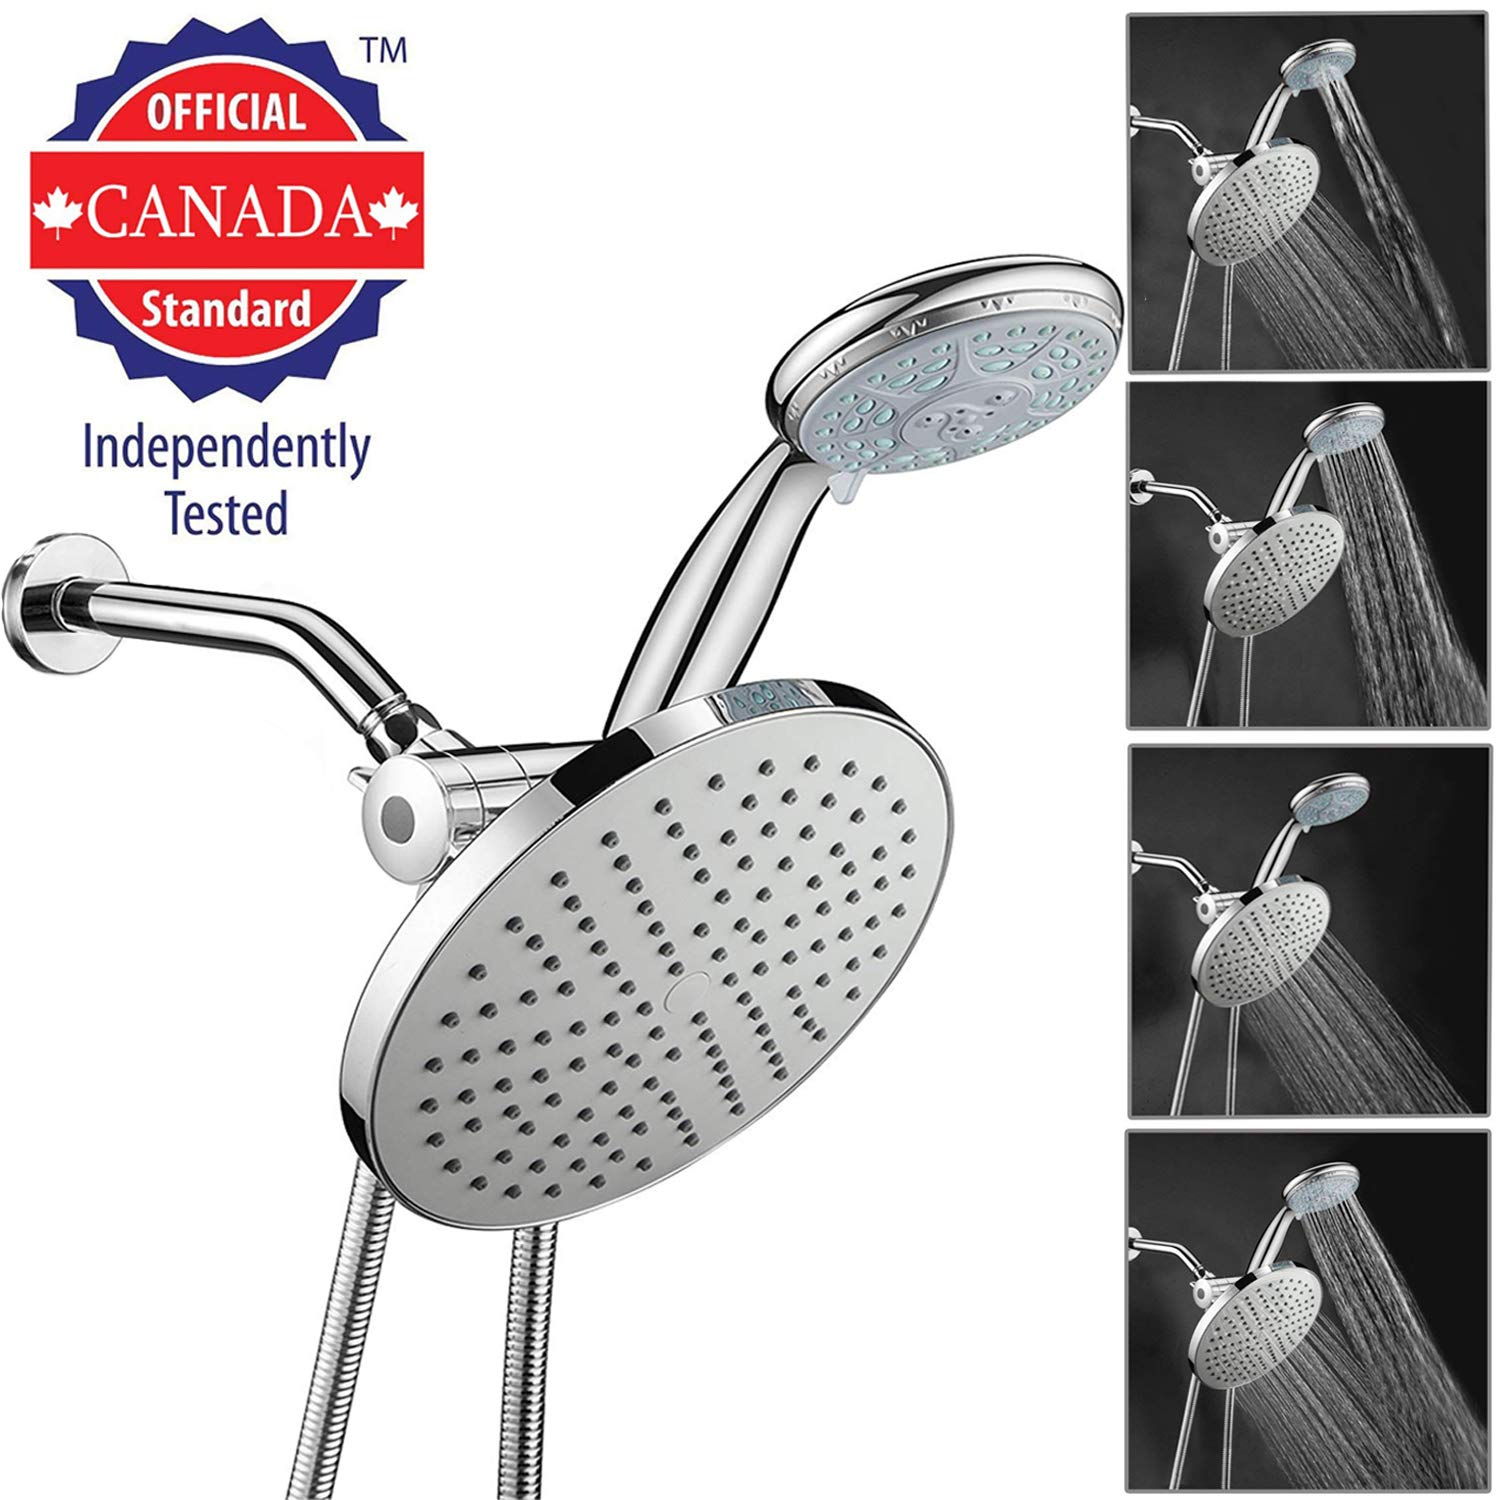 High Quality ABS Material Chrome Finish Surface Showerhead Set Easy Install Showerhead Combo Shower Head Shower Bracket Arespark 5 Setting High Pressure Handheld Showerhead and Rainfall Showerhead Combo with Shower Hose